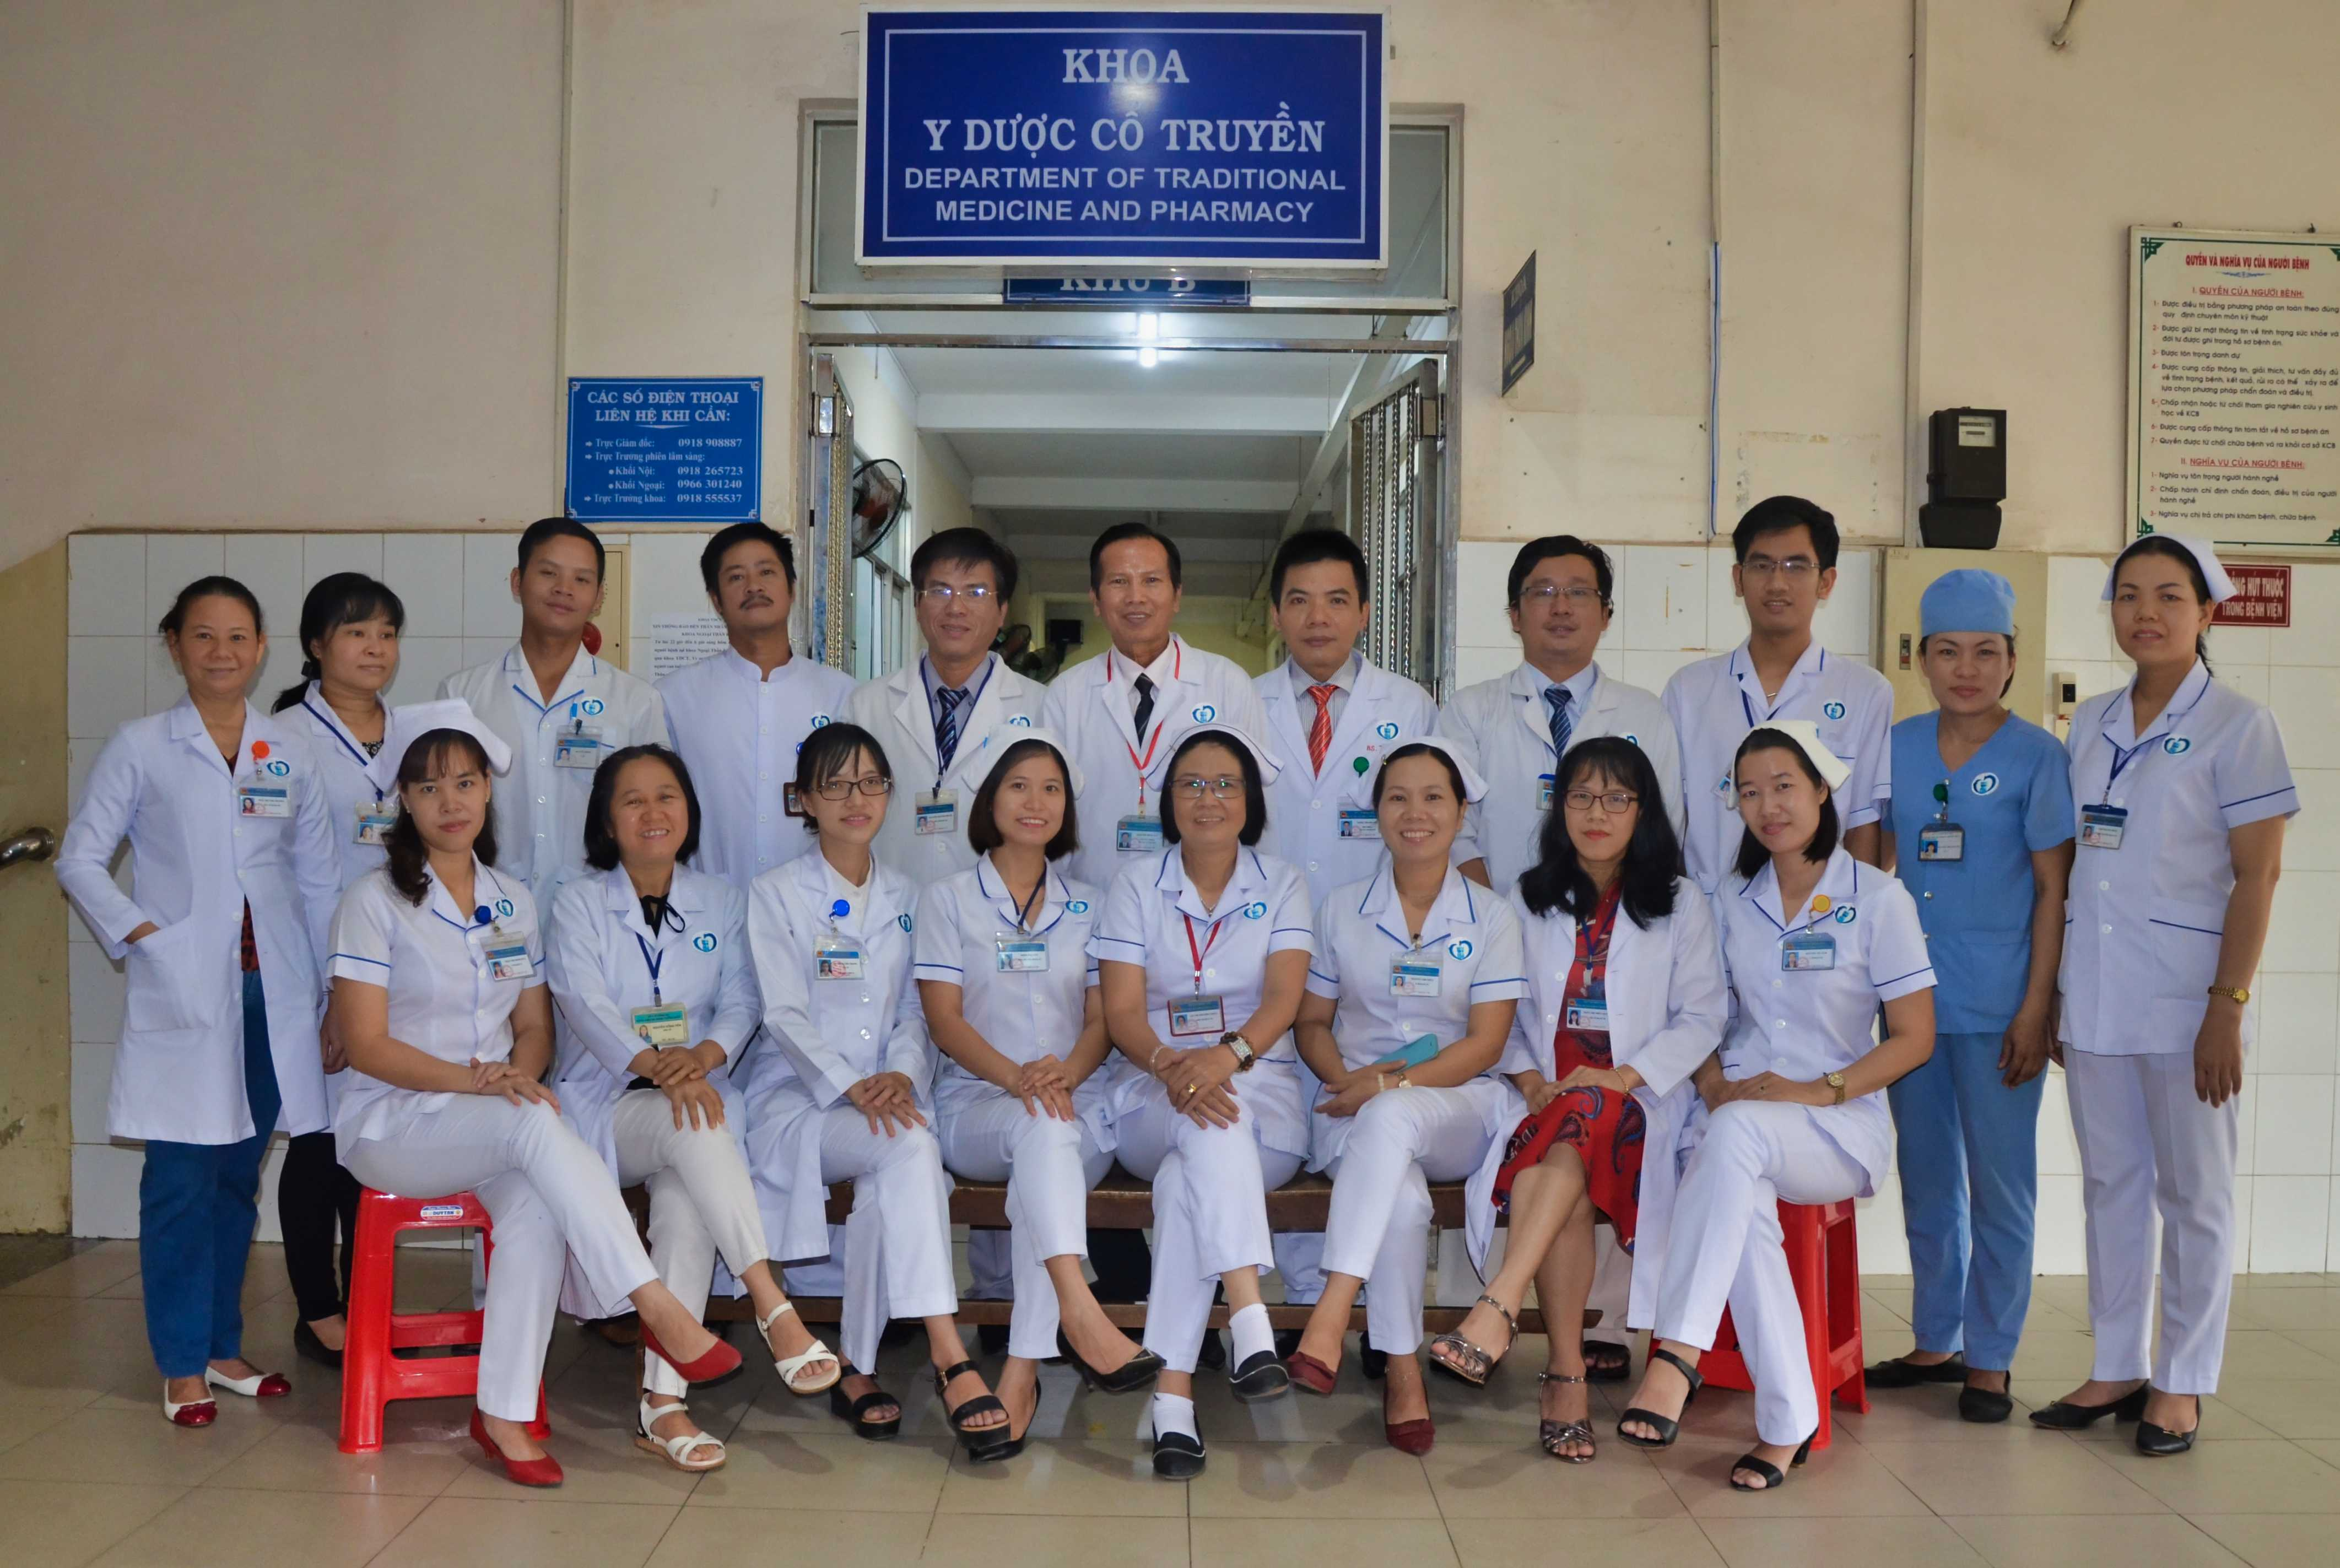 Khoa Y Học Cổ Truyền (Department Of Traditional Medicine And Pharmacy)